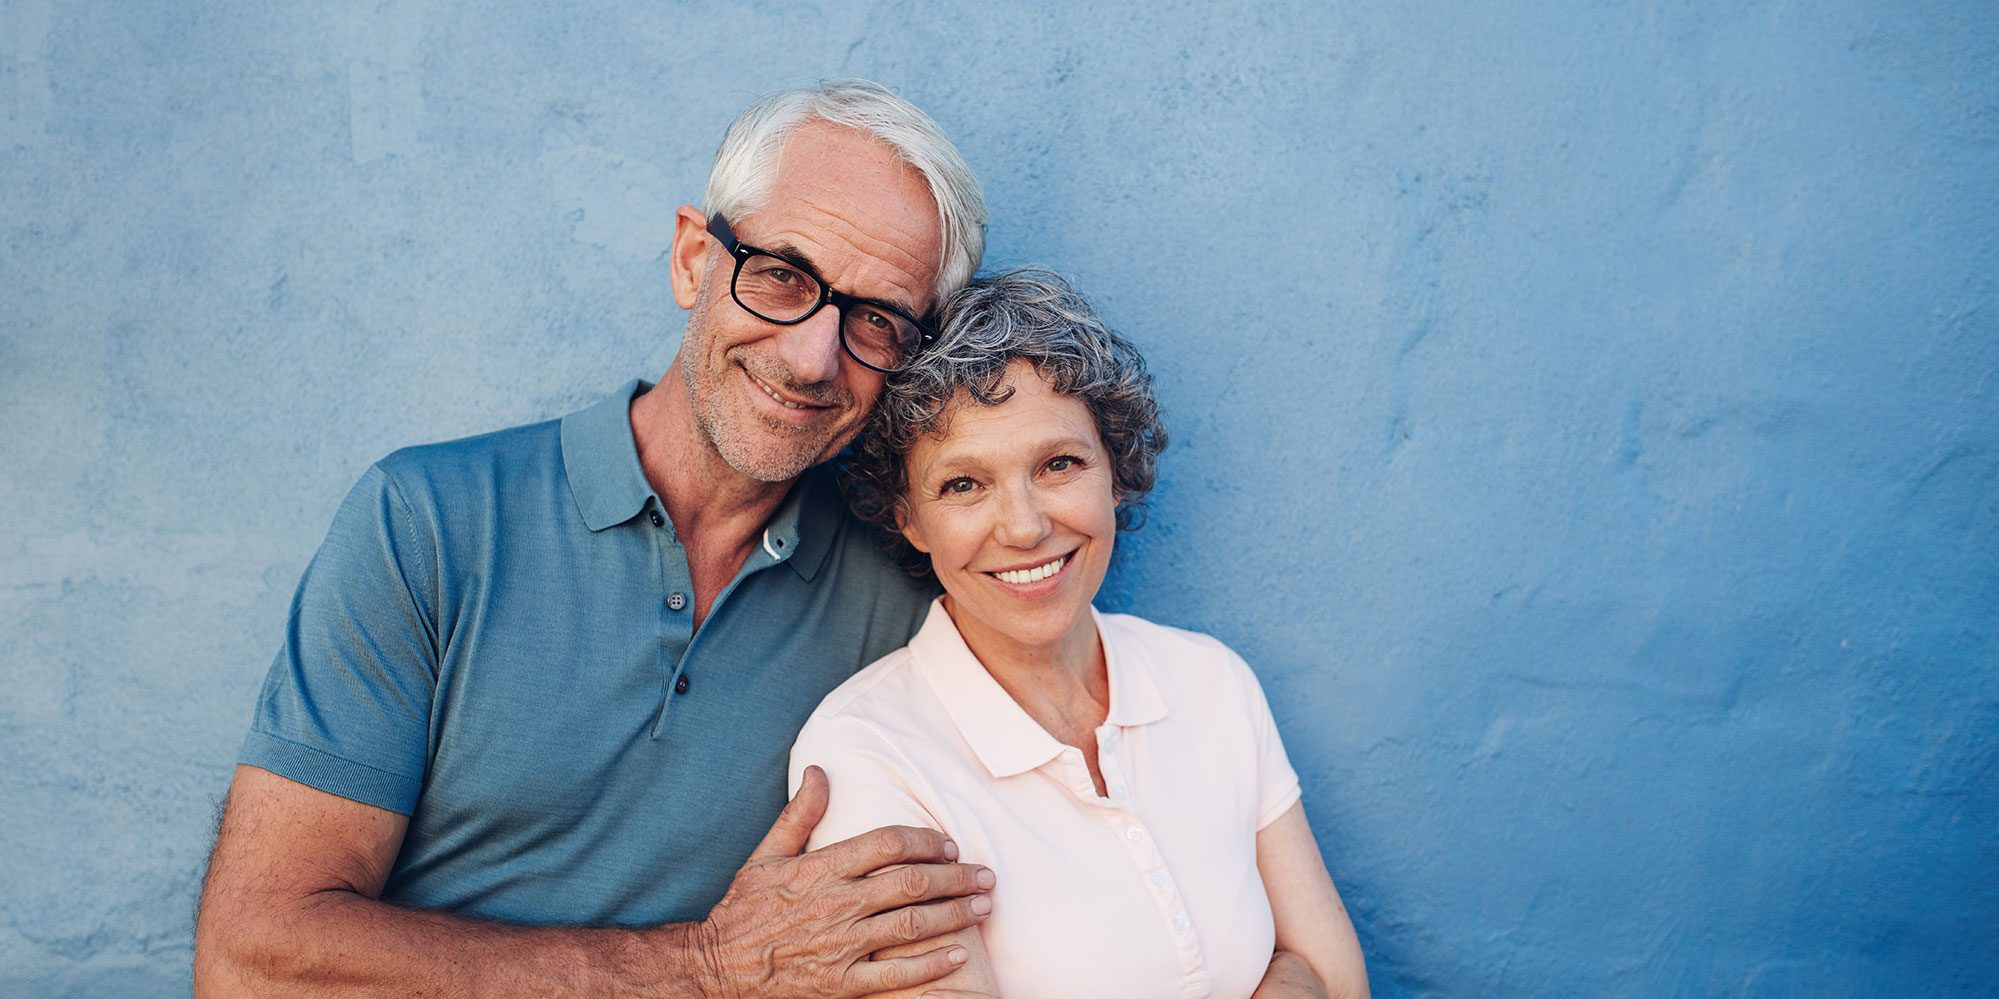 A middle aged couple smiling and standing together against a blue wall